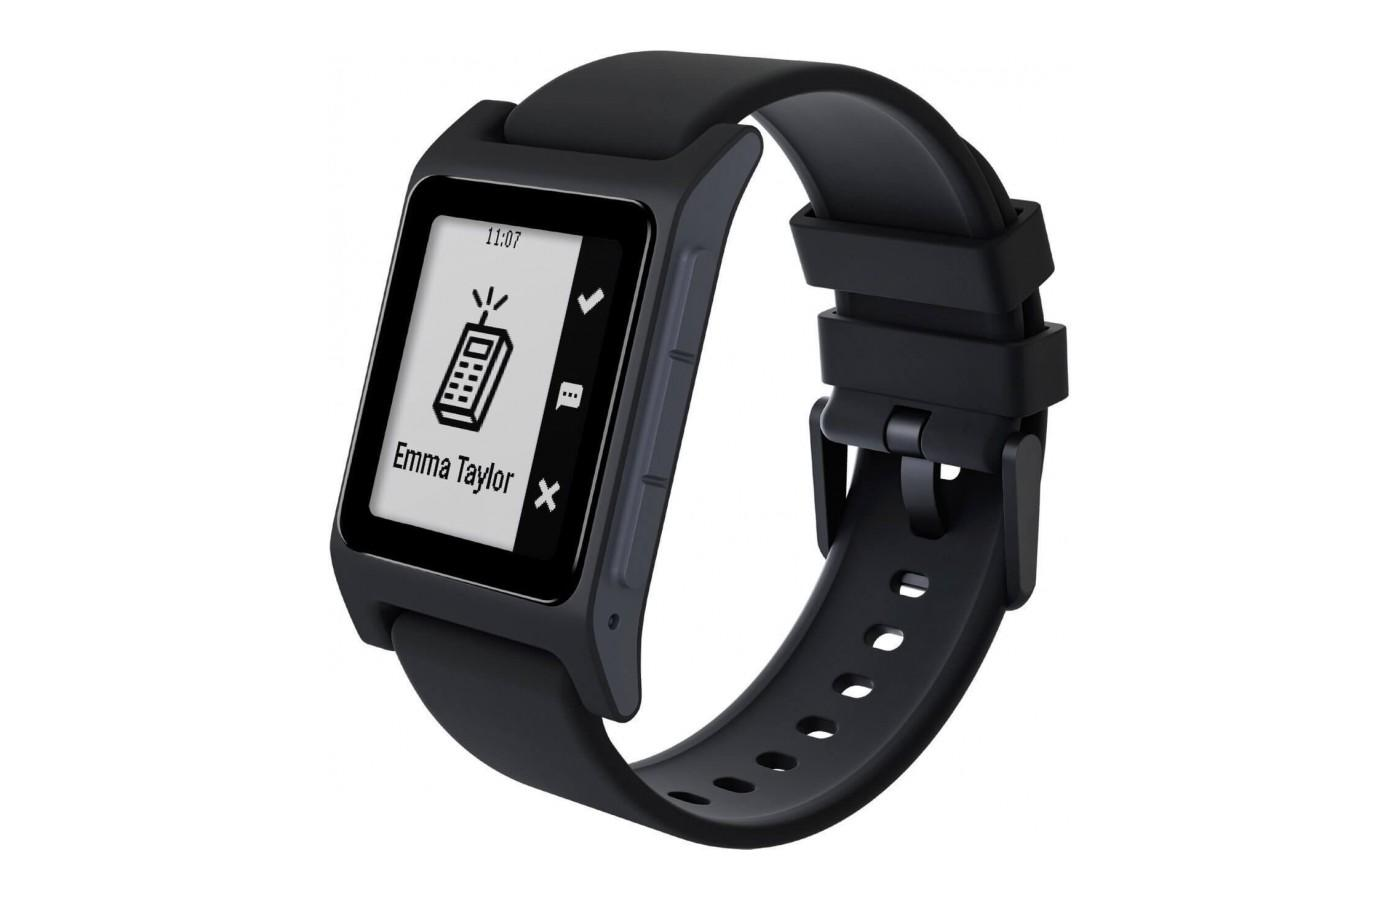 Pebble 2 SE has a sleek design